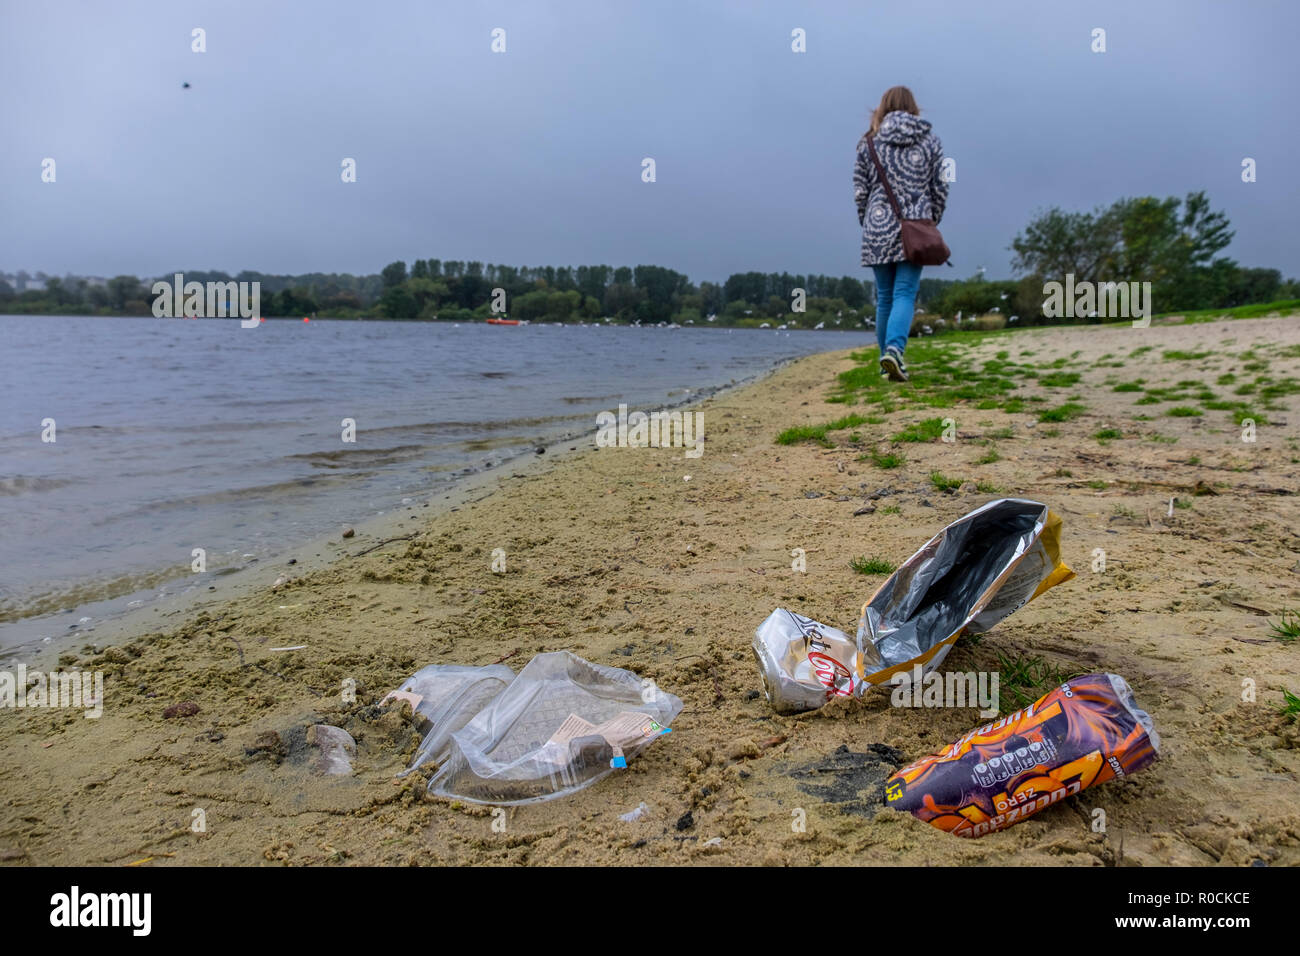 litter being dropped in scenic locations - Stock Image